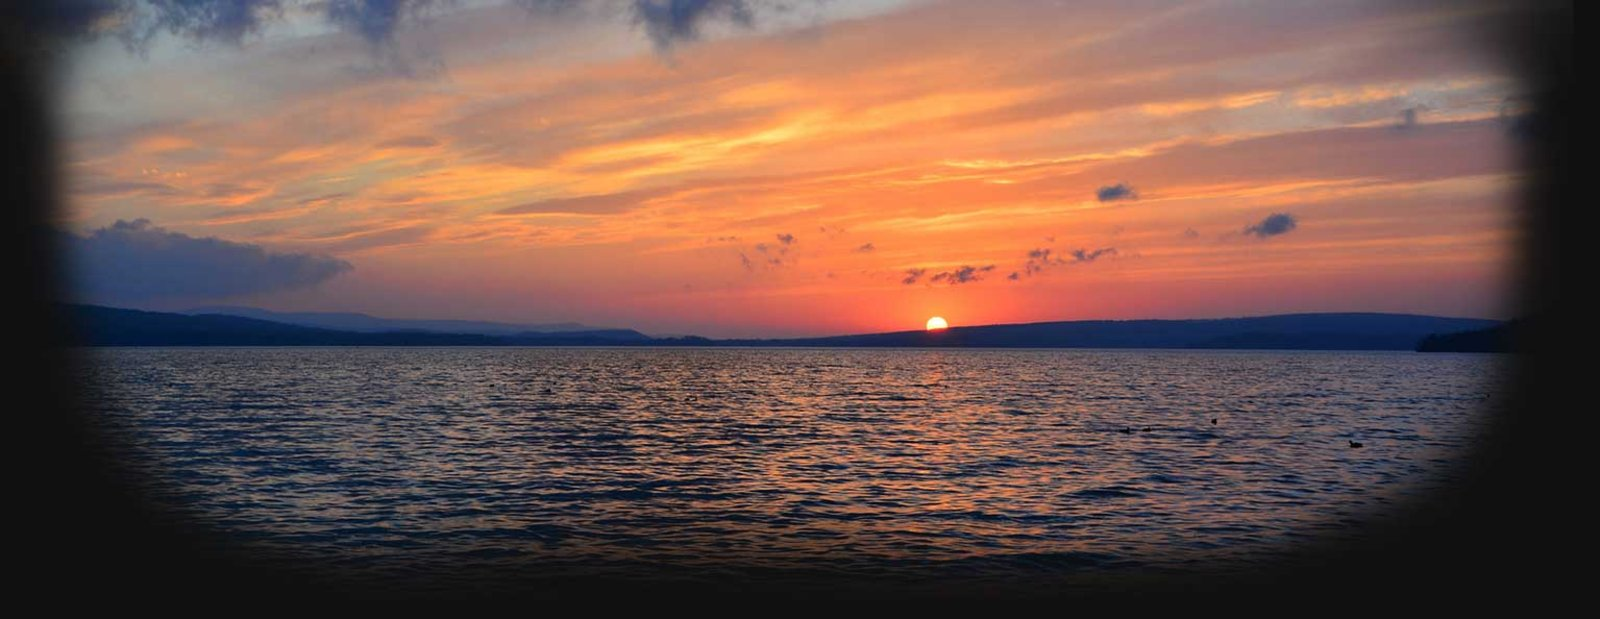 Image of the sun setting behind the lake - images provided by Jesse Hays